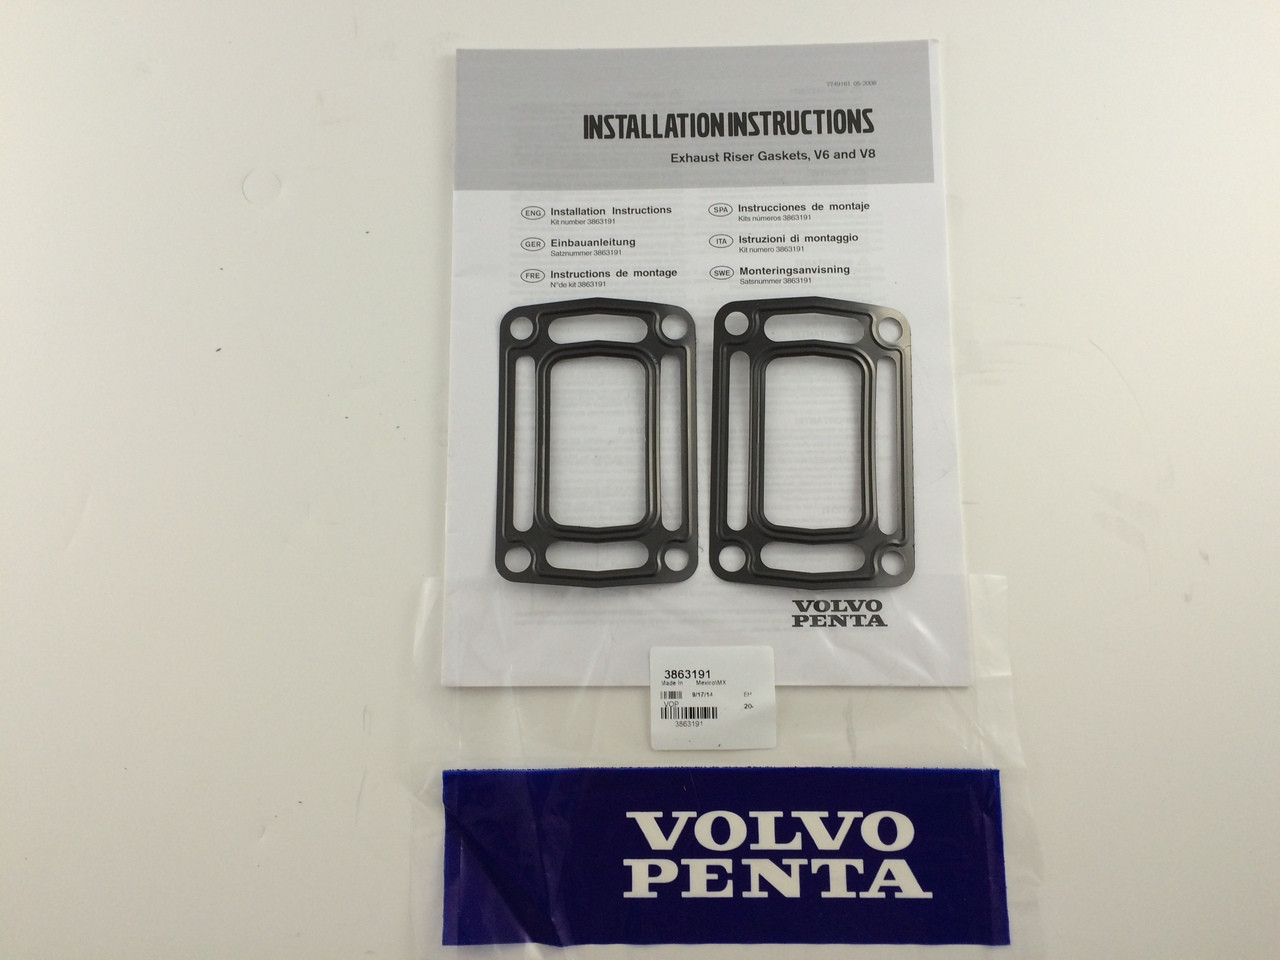 RISER GASKET KIT - 3863191 ** IN STOCK & READY TO SHIP